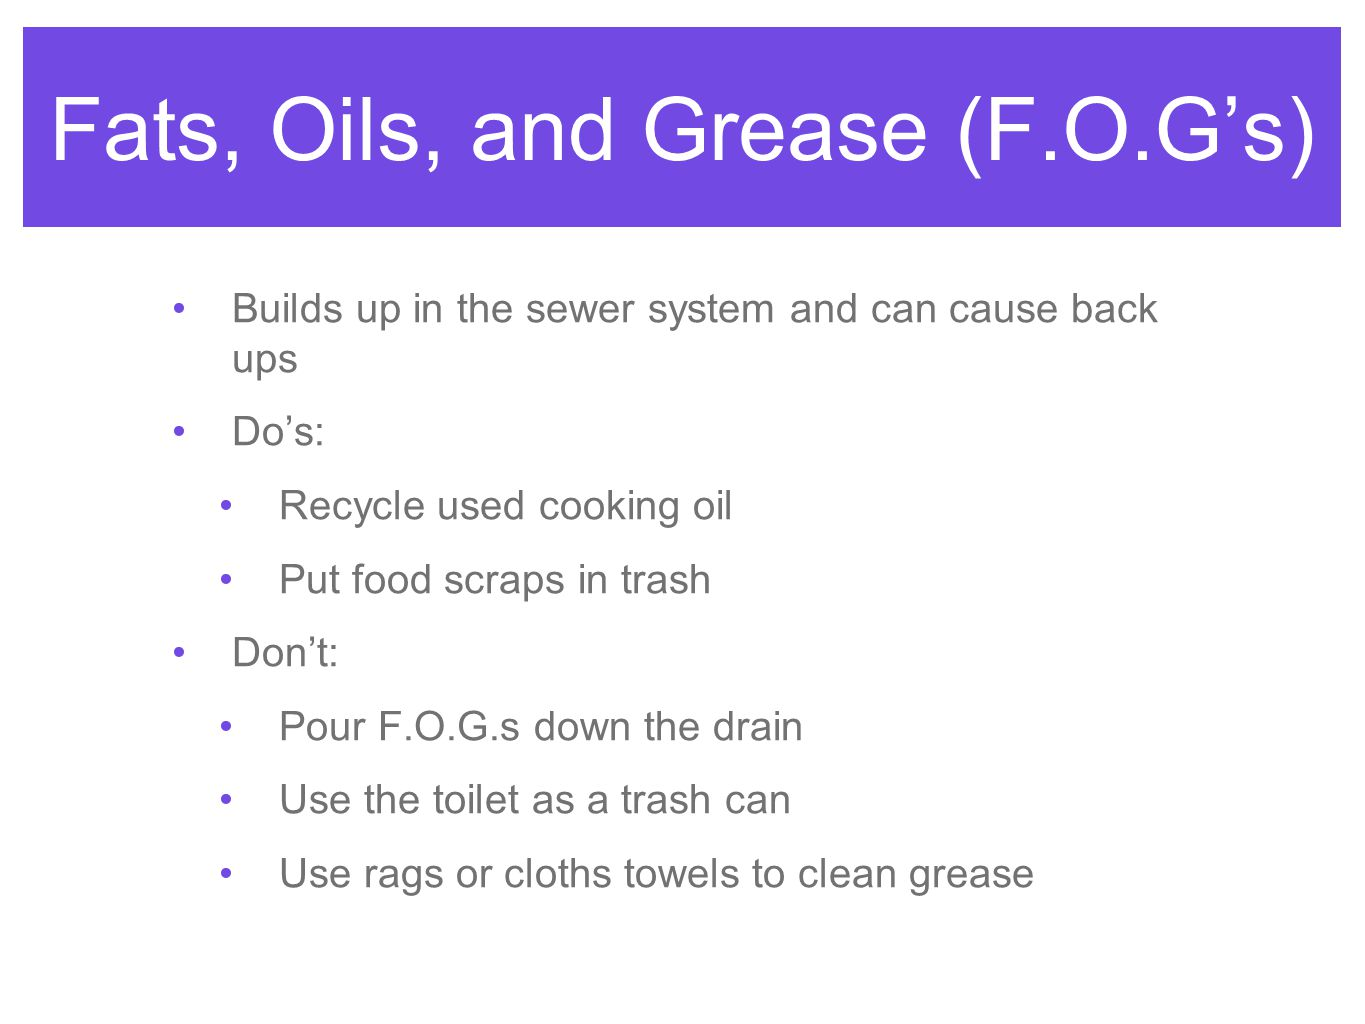 Fats, Oils, and Grease (F.O.G's)